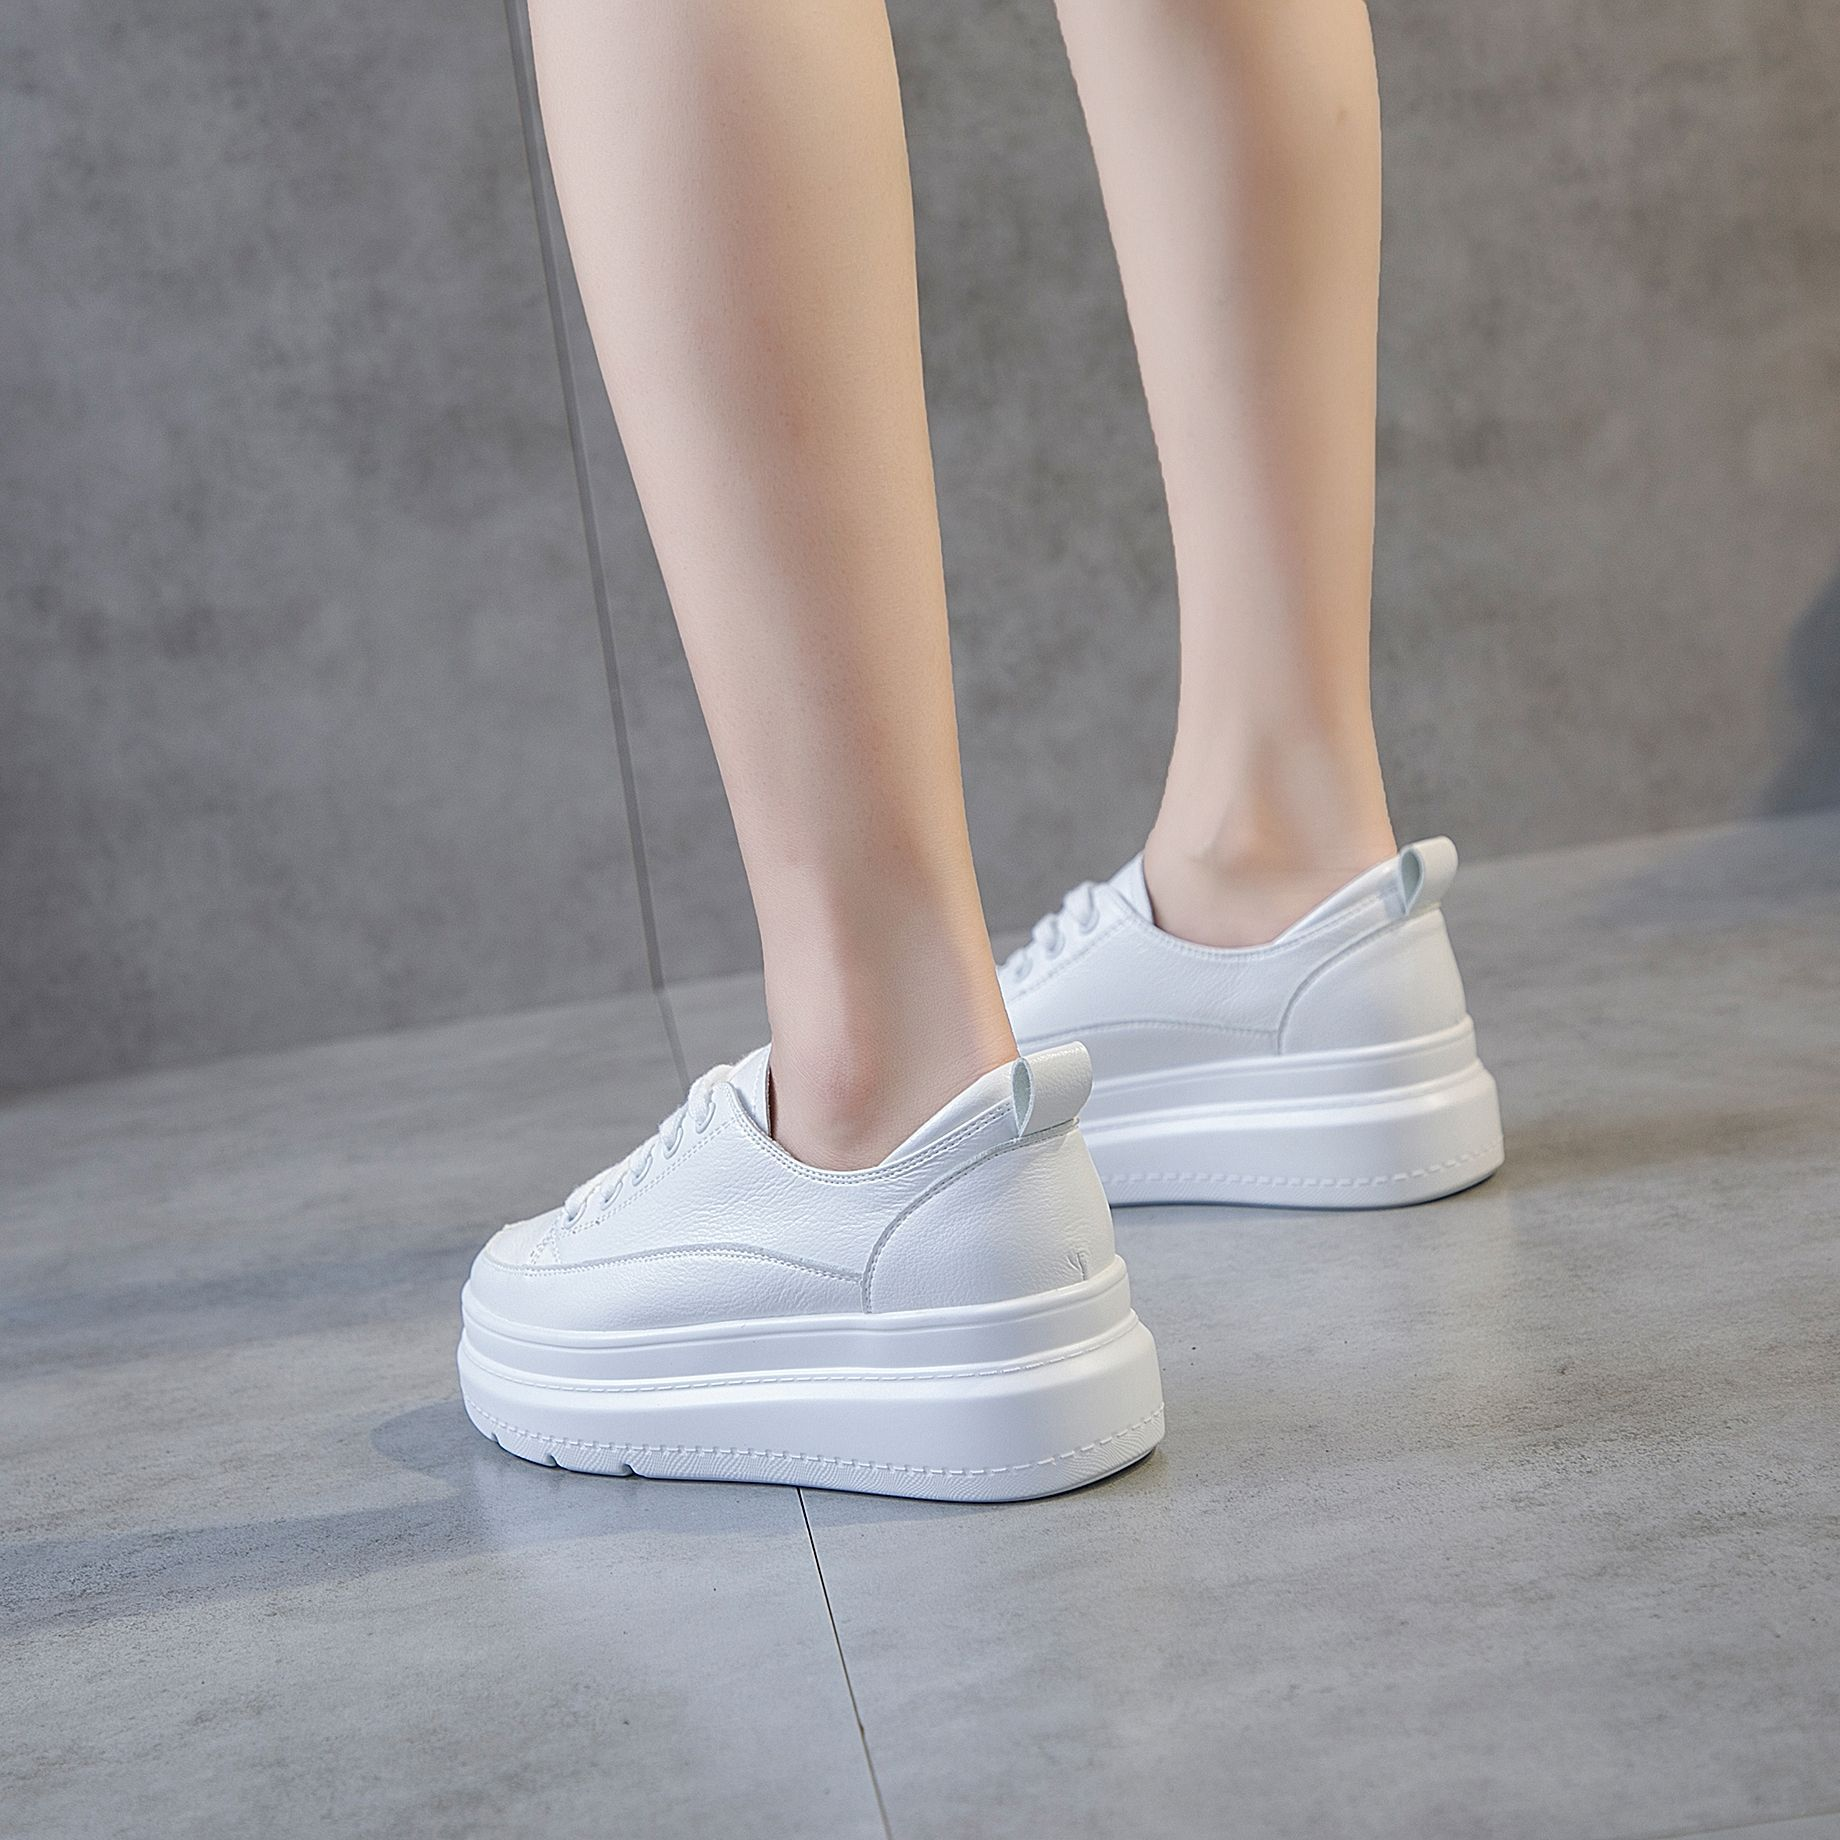 MFU22  2019 new top layer cowhide good quality white shoes womens shoes Korean version of the wild shoes JIANCMFU22  2019 new top layer cowhide good quality white shoes womens shoes Korean version of the wild shoes JIANC